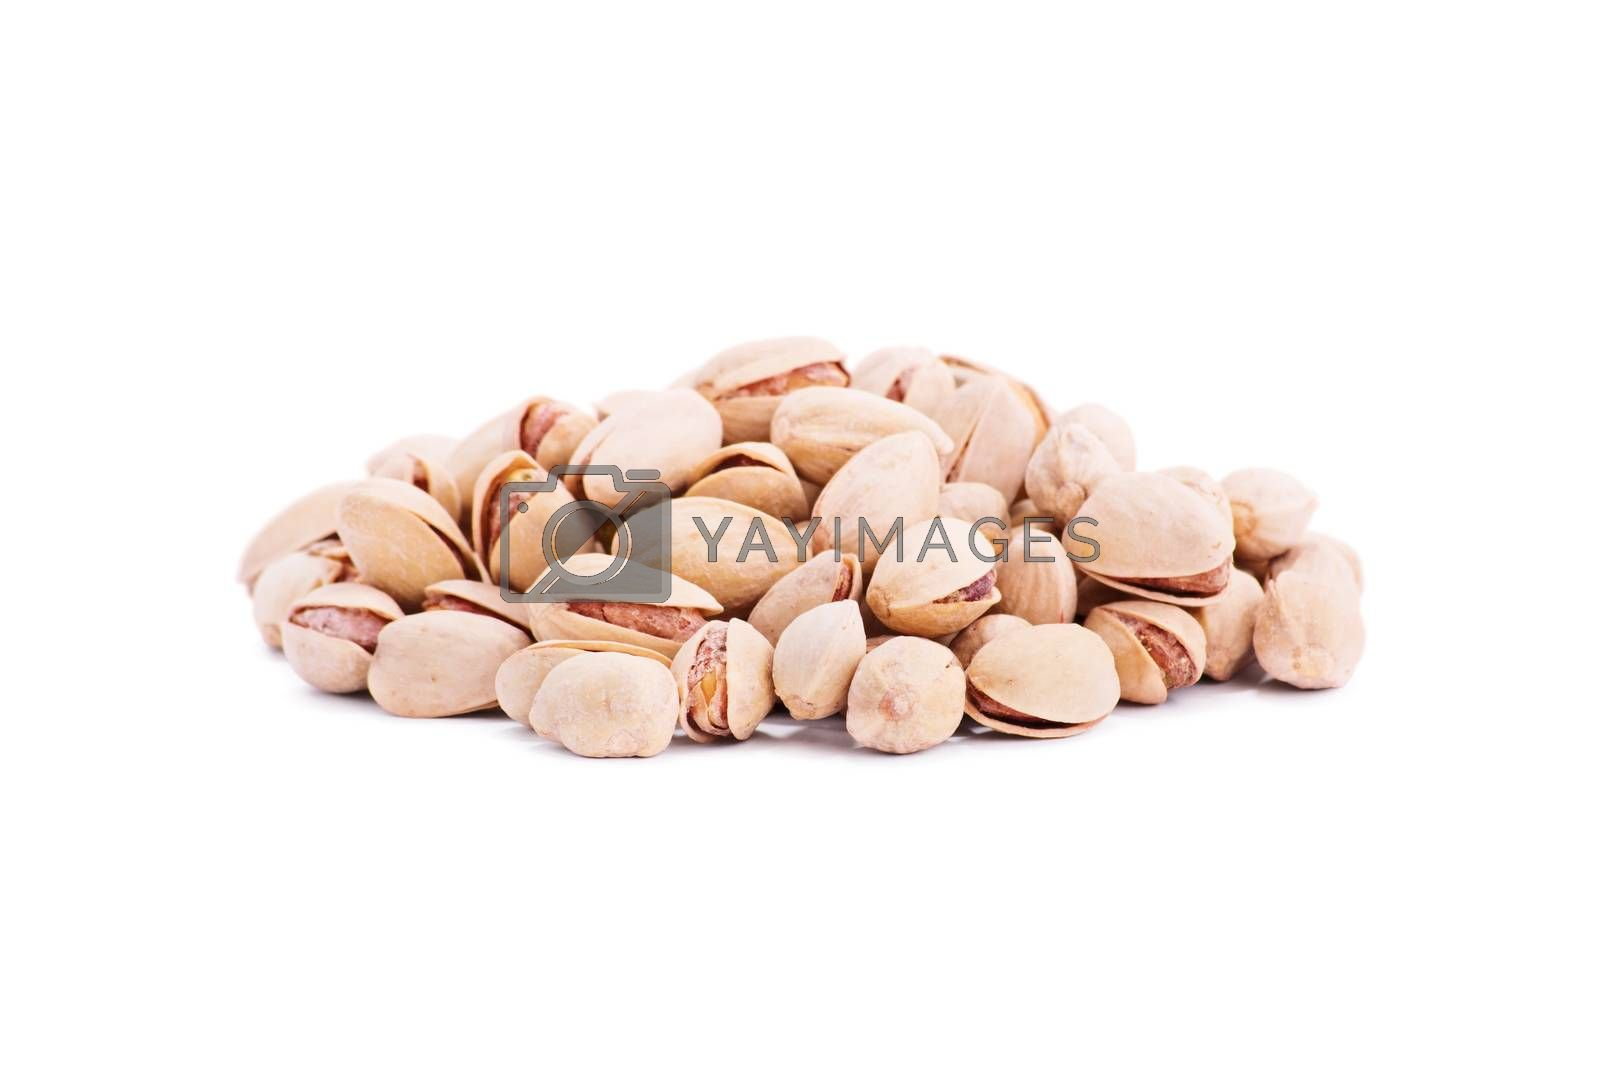 Close up shot of heap of pistachios, isolated on white background.